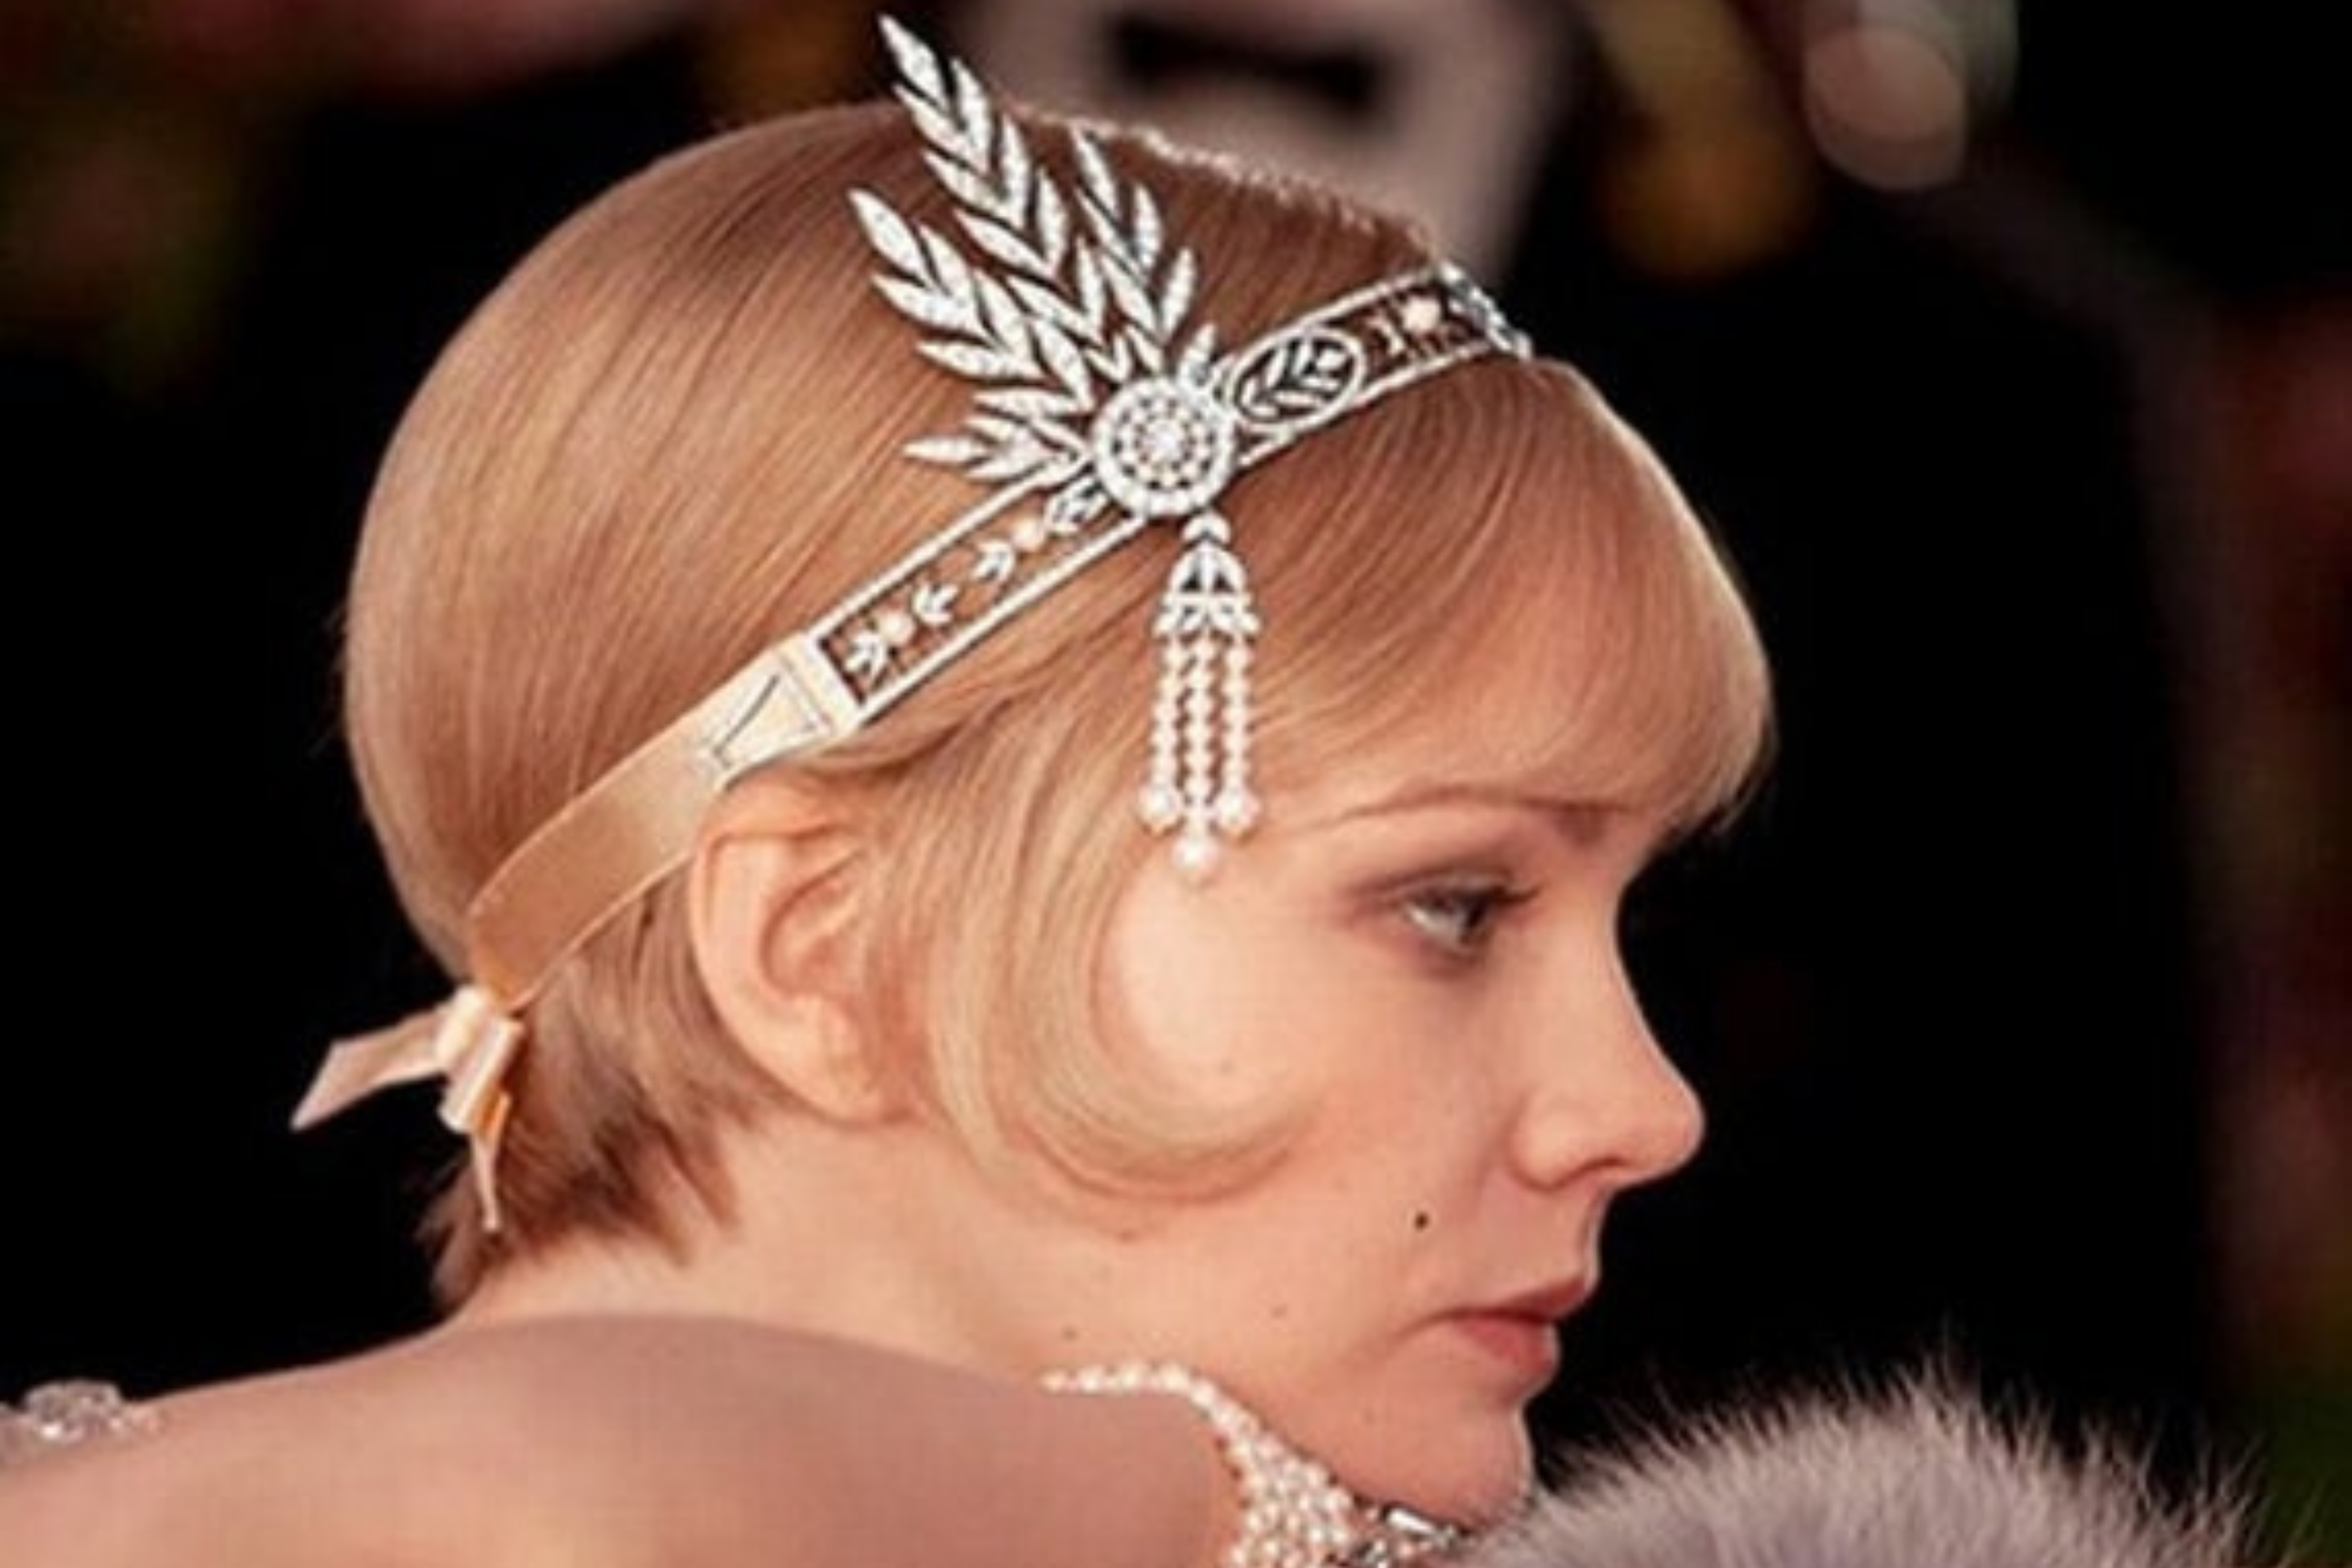 Jewellery in the Great Gatsby